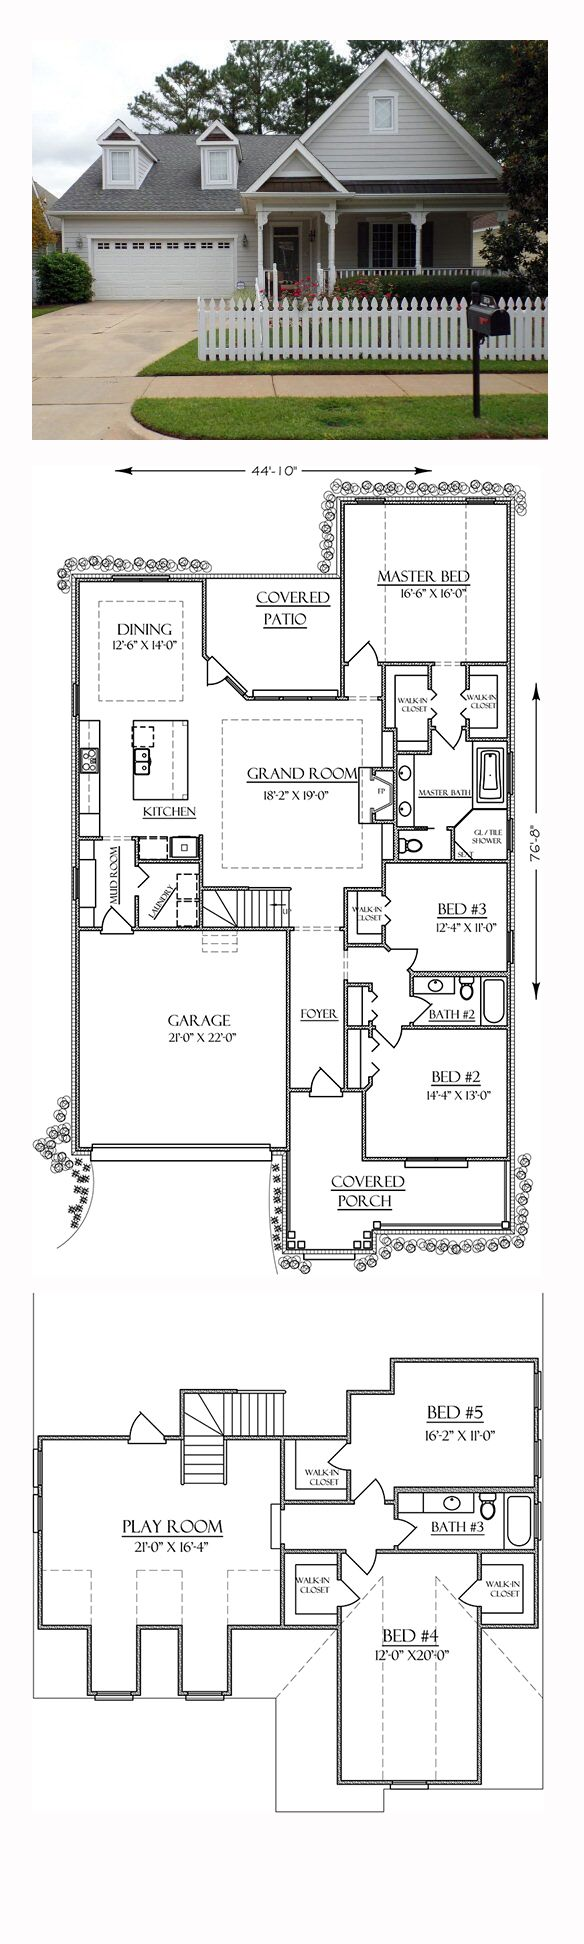 New House Plan 74756 Total Living Area: 3162 Sq., 5 Bedrooms And 3  Bathrooms.